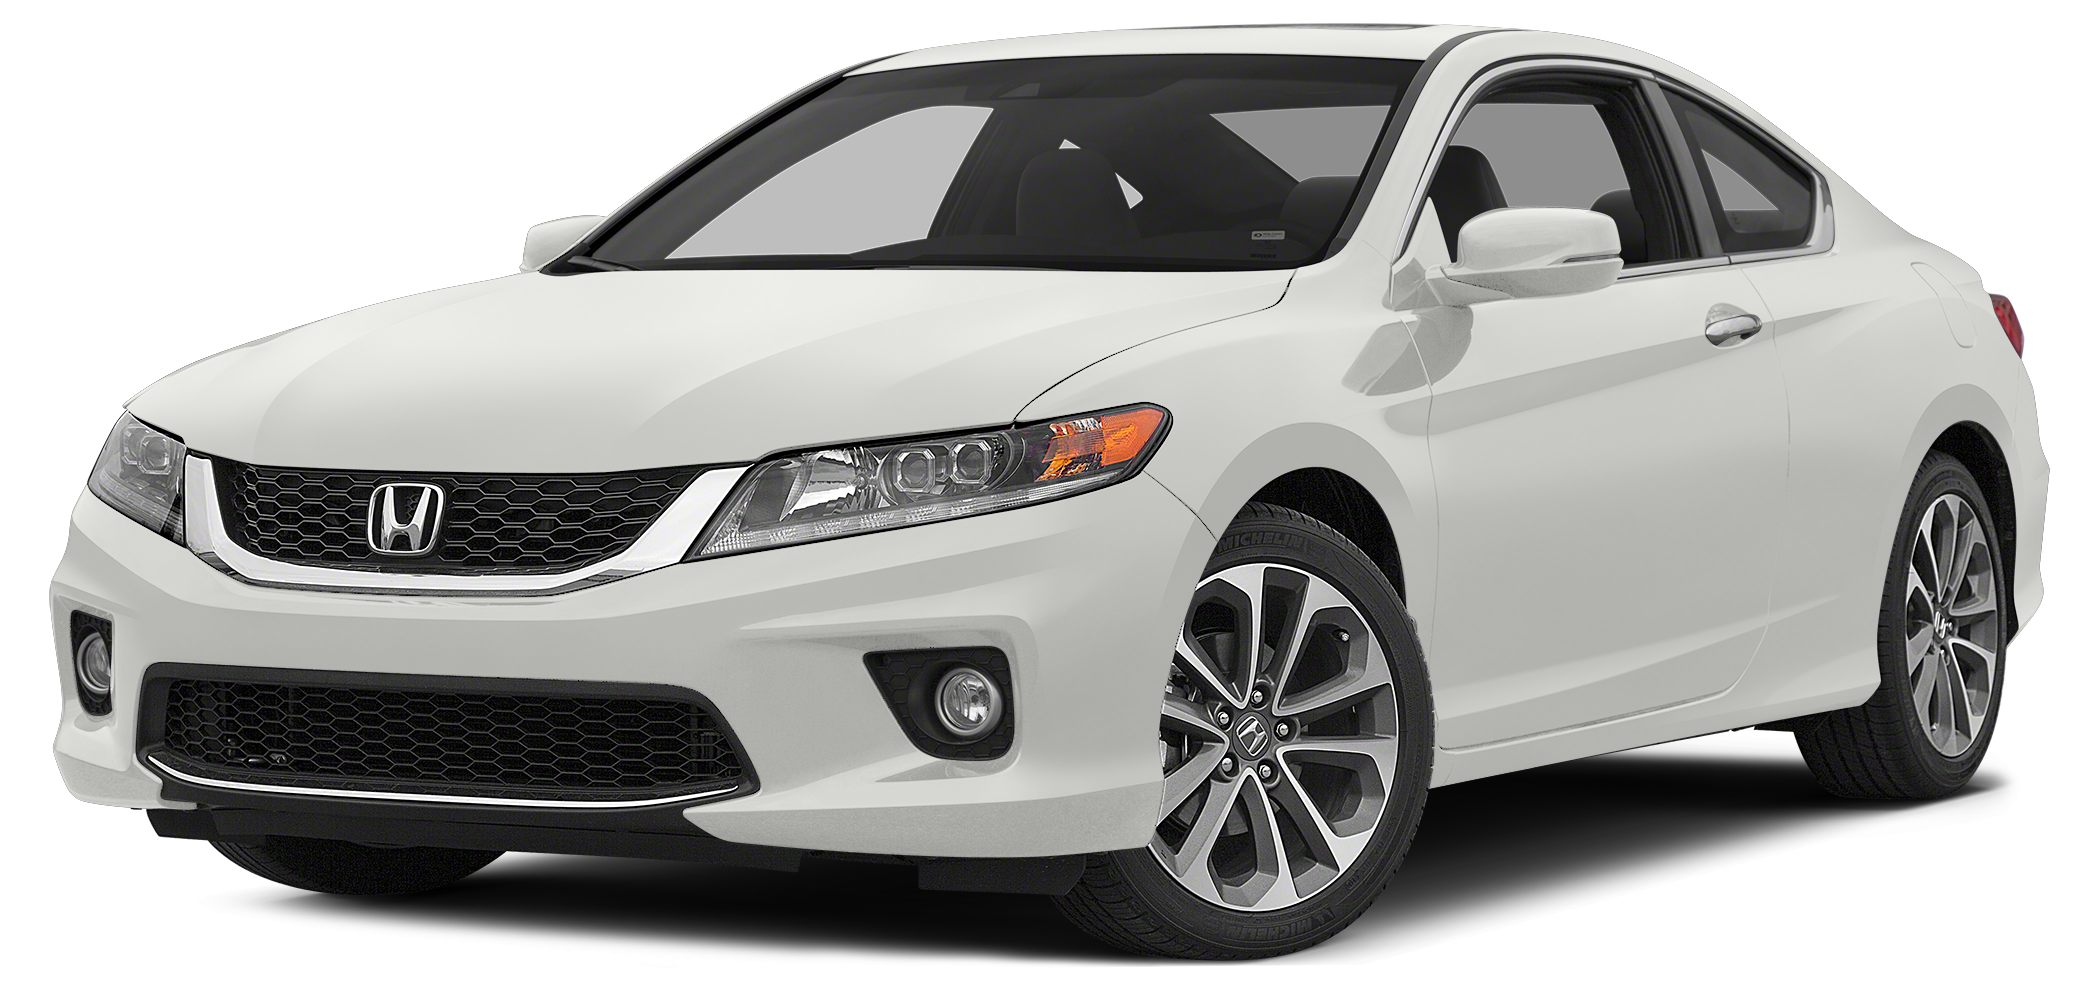 2013 Honda Accord EX-L V6 w Navigation Miles 42343Color White Orchid Pearl Stock 004289 VIN